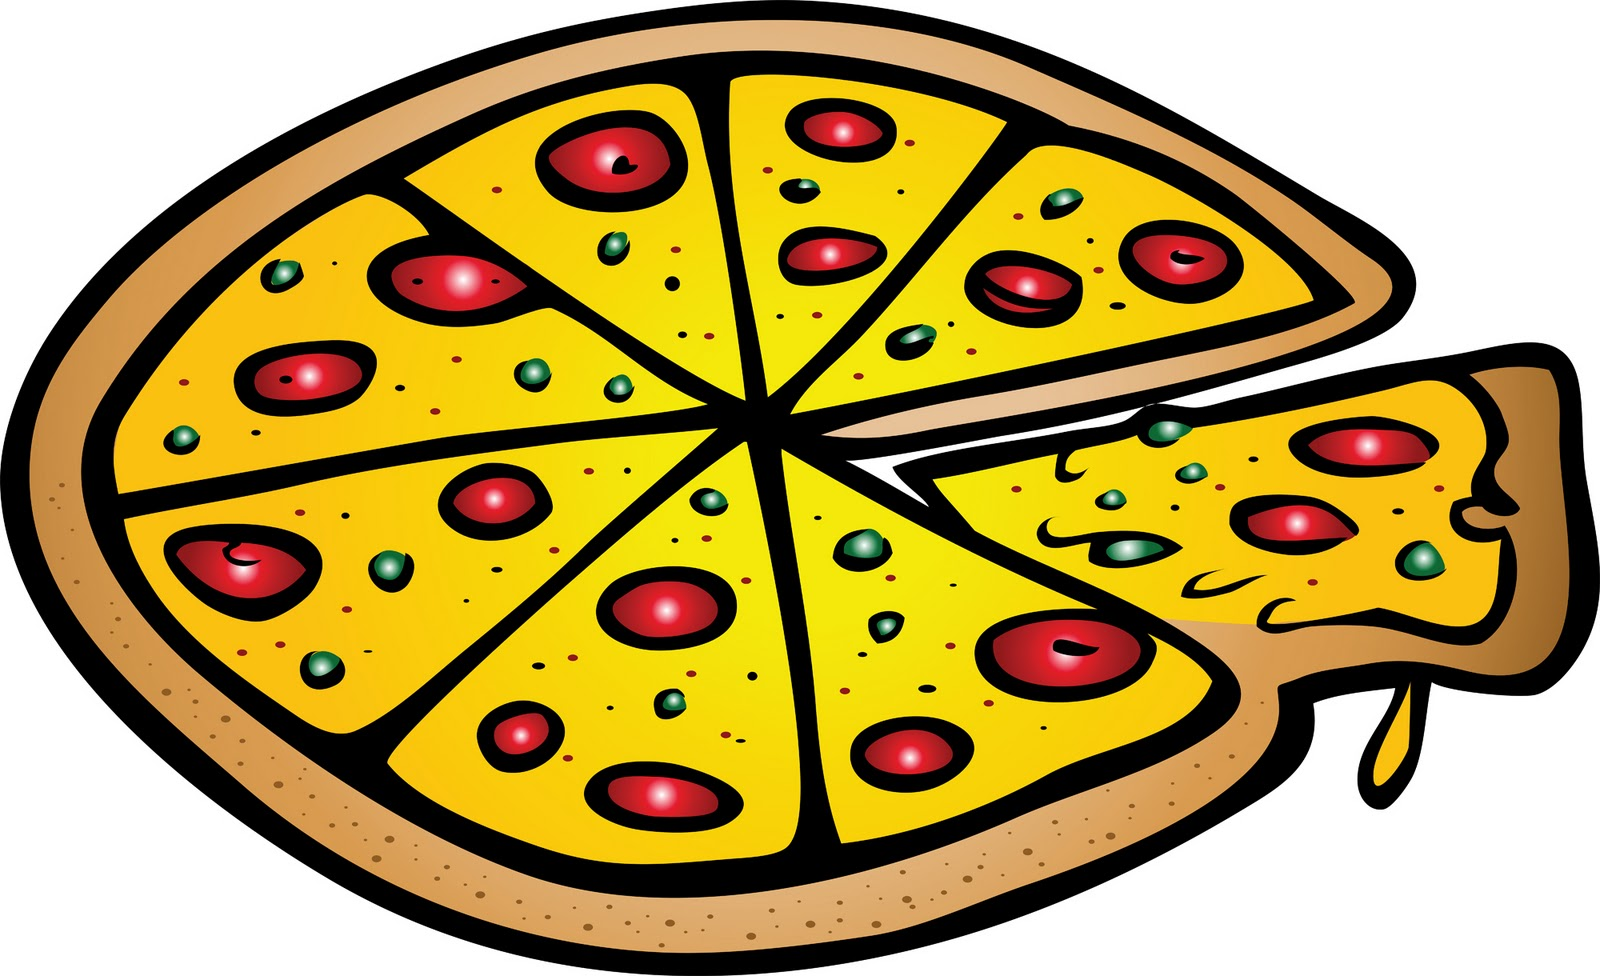 free pizza graphics clipart - photo #30